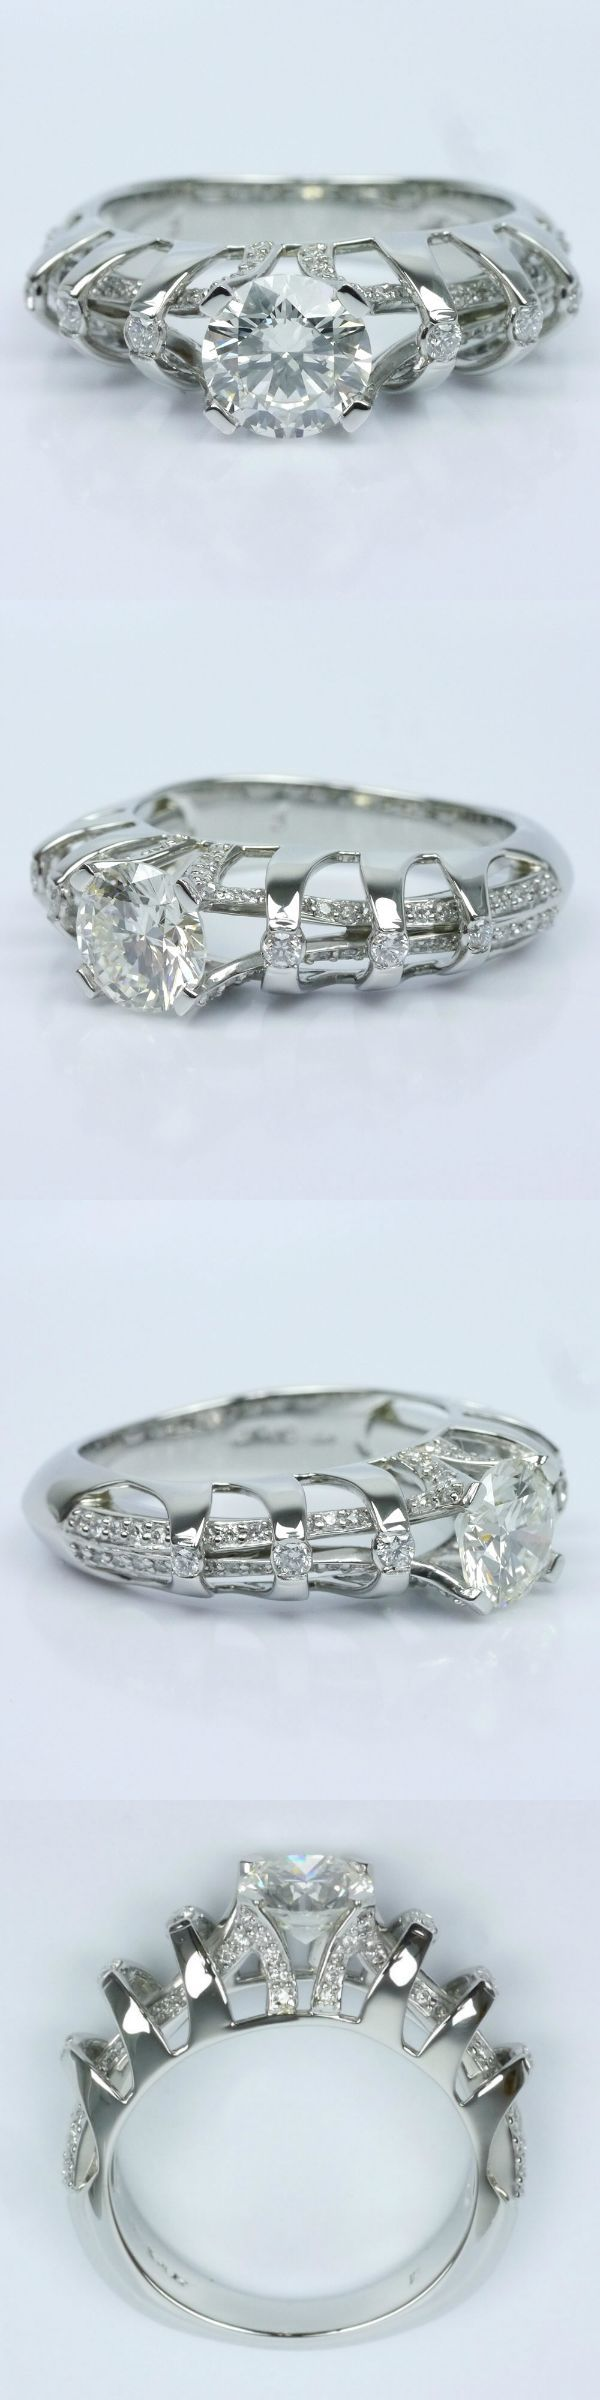 Crowned Split Shank Diamond Engagement Ring! Diamond/Gem Cost: $4,570 (Round 1.03 Ctw. Color: J Clarity: IF Cut: Super Ideal Certification: GIA Polish: Excellent) Setting Cost: $3,250 (Custom Split Shank Metal: Platinum Side Shape: Round Side Carat: .75 Side Color: I Side Clarity: SI1-SI2 Side Cut: Ideal) Total Cost: $7,820 https://www.brilliance.com/recently-purchased-rings/crowned-split-shank-diamond-engagement-ring